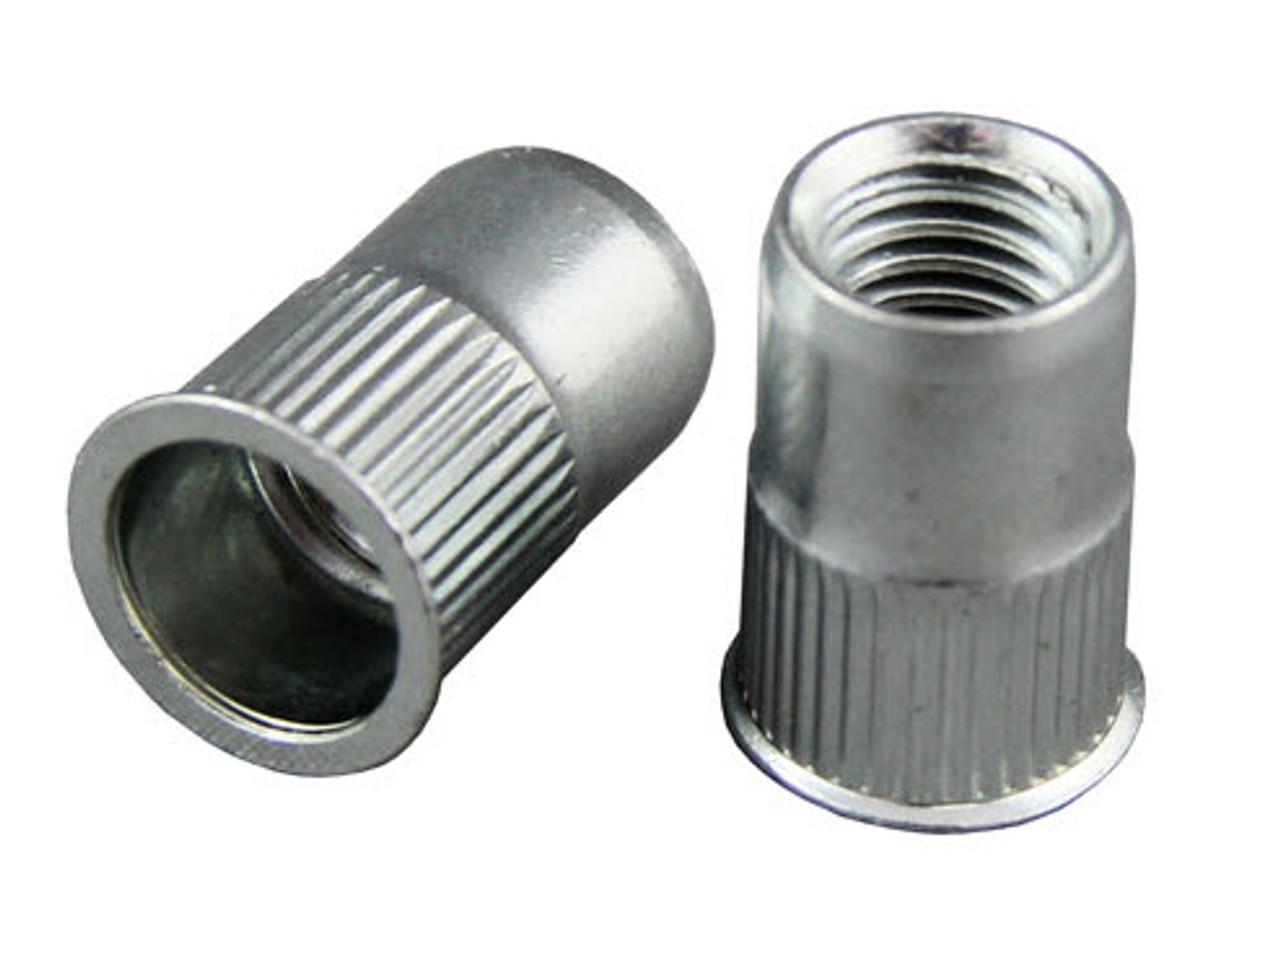 Countersunk Nutserts (Rivet Nut) Low Profile Head - Round Splined Body Pack of 10